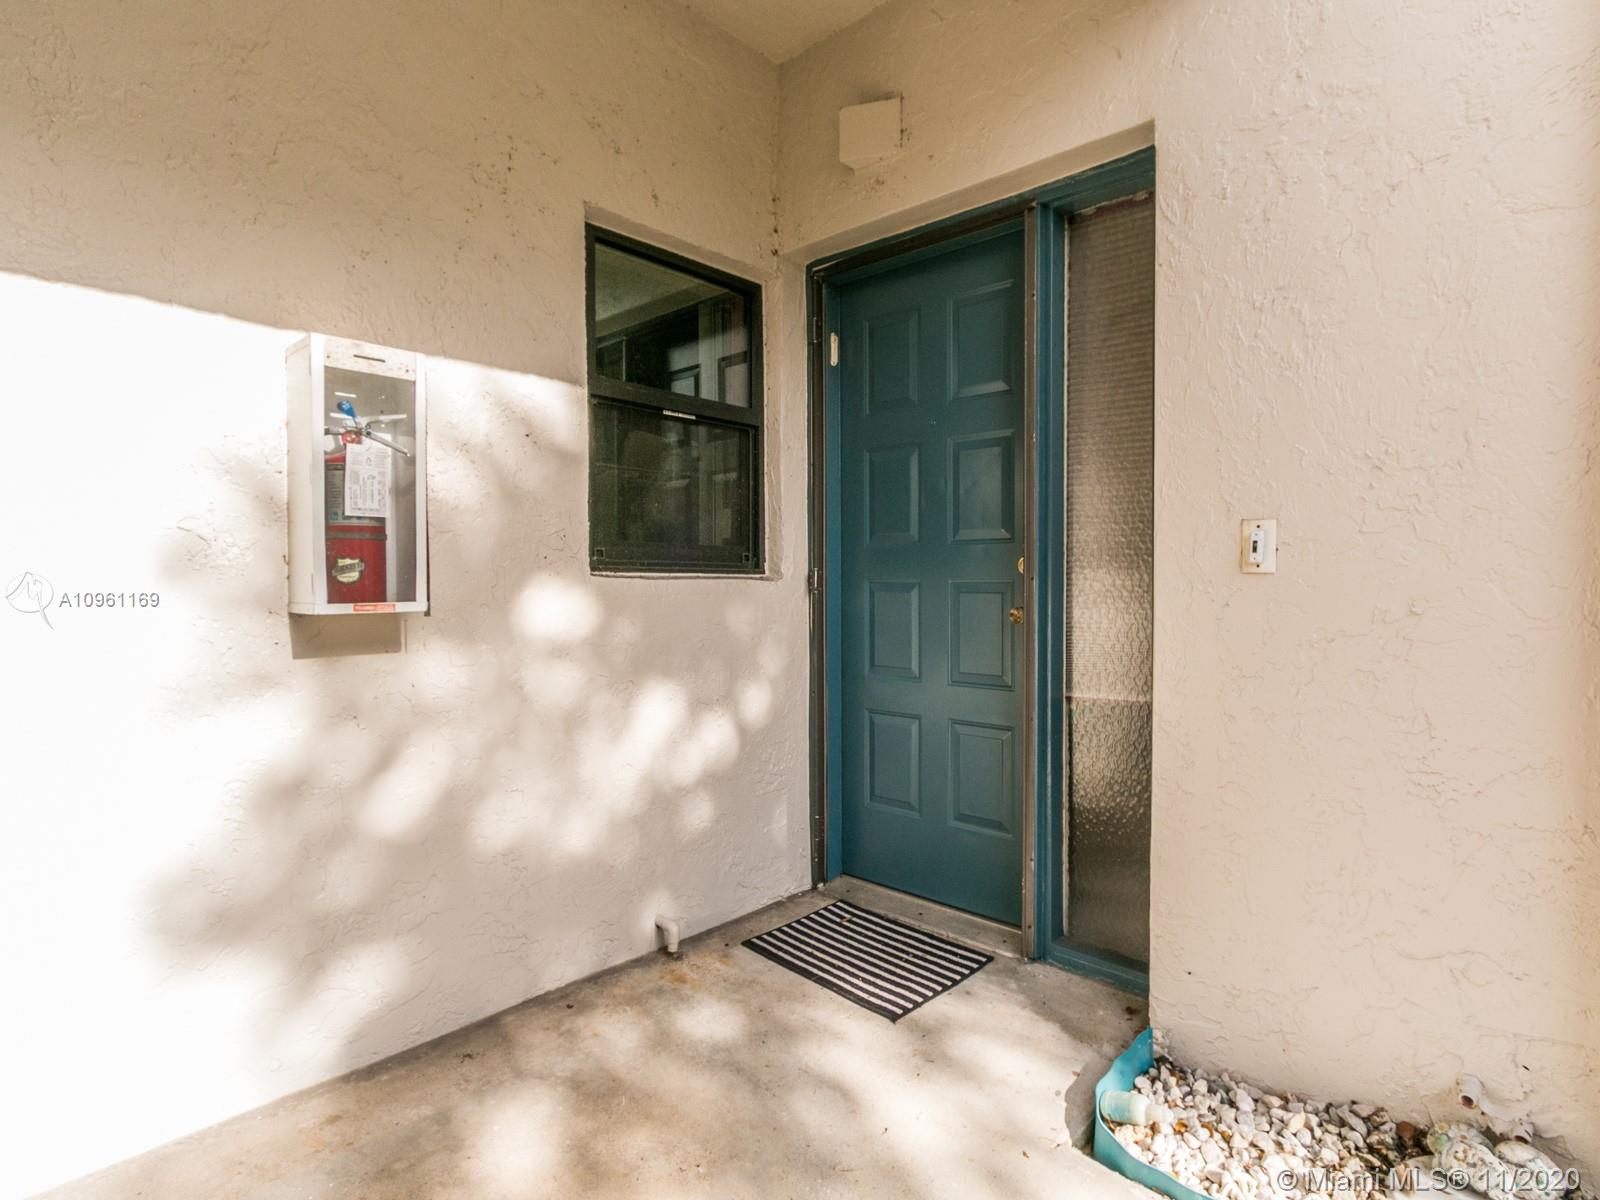 MUST SEE THIS UNIQUE 3/2 CONDO IN BEAUTIFUL BAYWOOD VILLAGE II INSIDE THE TOWNSHIP OF COCONUT CREEK. THE UNIT HAS A SPLIT BEDROOM PLAN WITH A NICE SIZE MASTER. THERE'S A LARGE PATIO WITH FULL SIZE WASHER DRYER AND A PRIVATE BACKYARD. CLOSE TO ALL SHOPPING AND LOTS OF RESTAURANTS. THIS CONDO IS READY FOR YOU TO CALL IT HOME MUST WEAR MASKS WHEN SHOWING